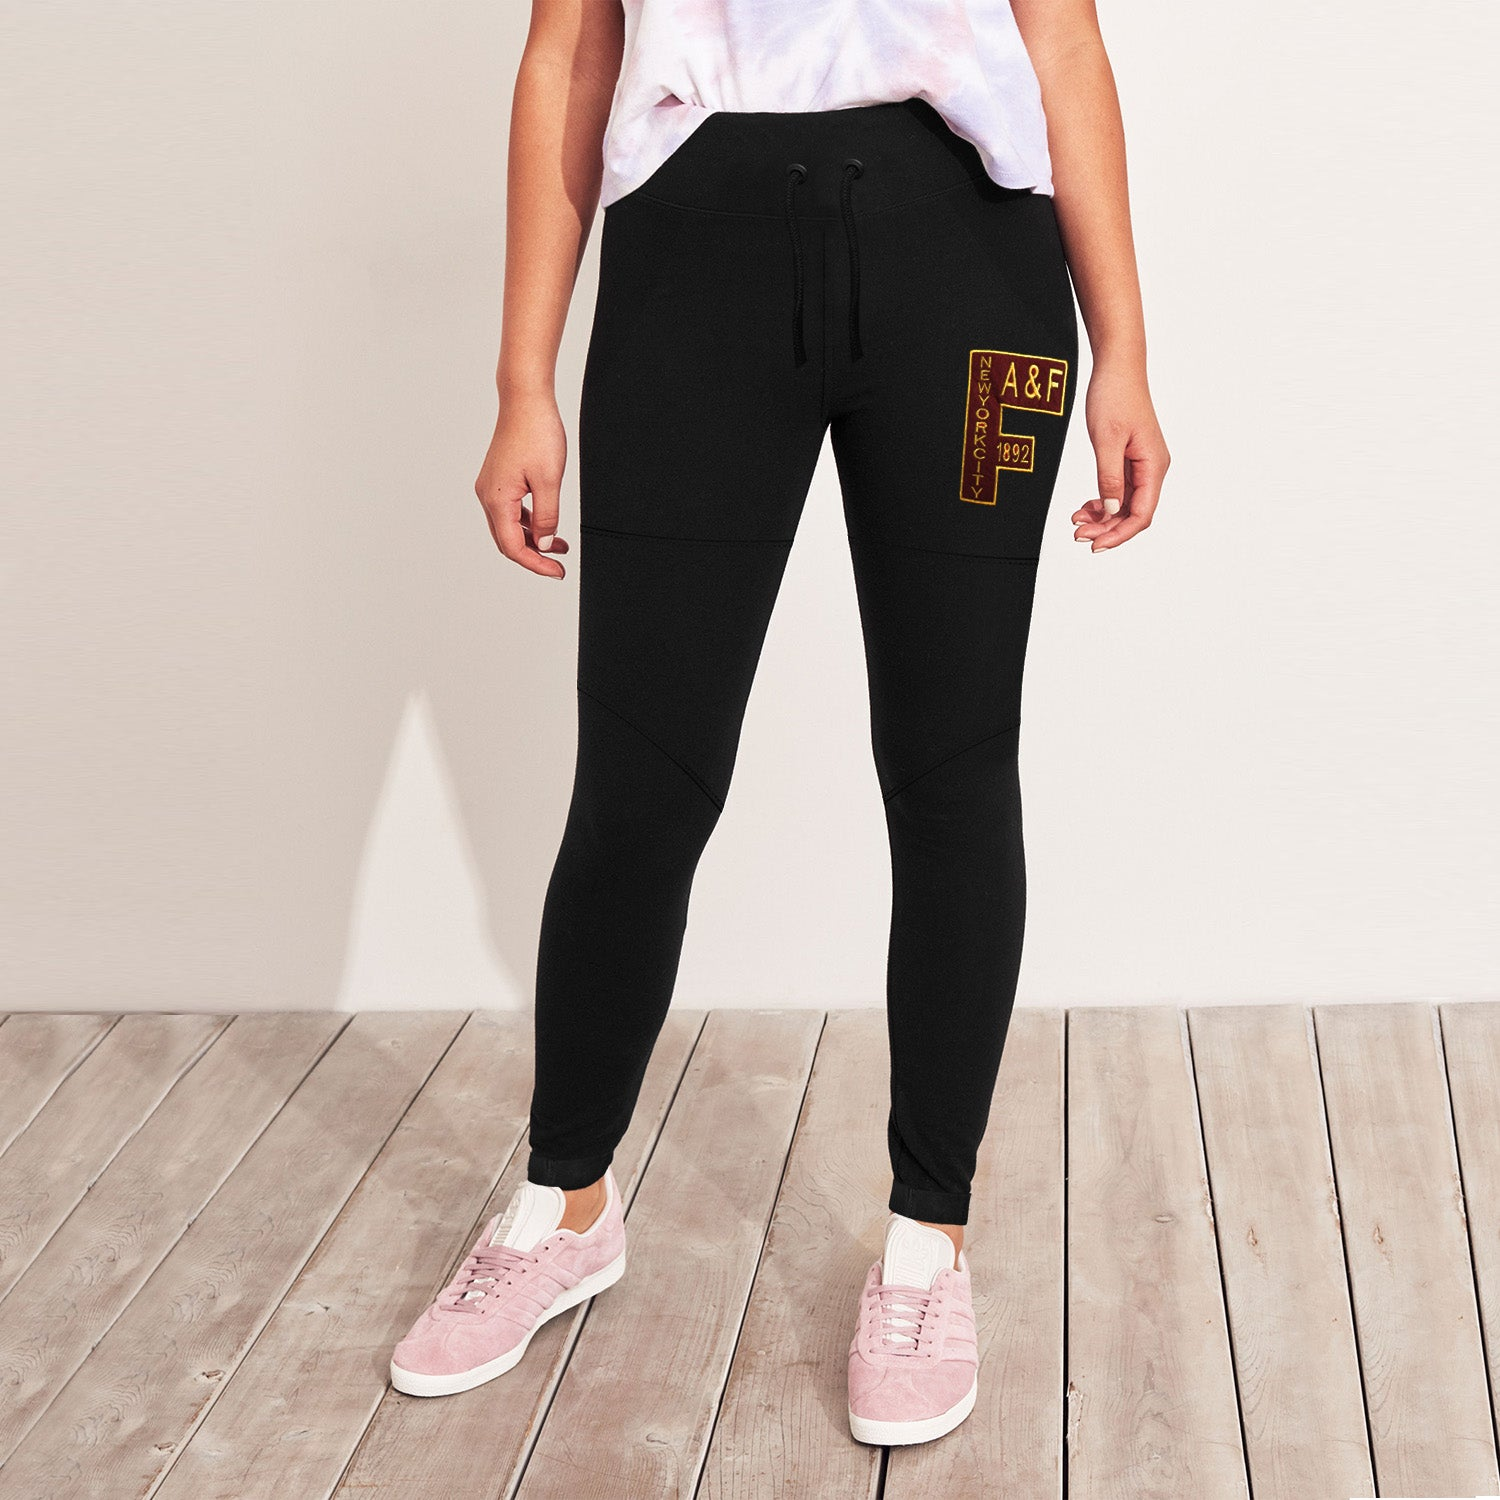 A&F Terry Fleece Yellow & Maroon Embroidery Slim Fit Jogger Trouser For Ladies-Black-BE9730